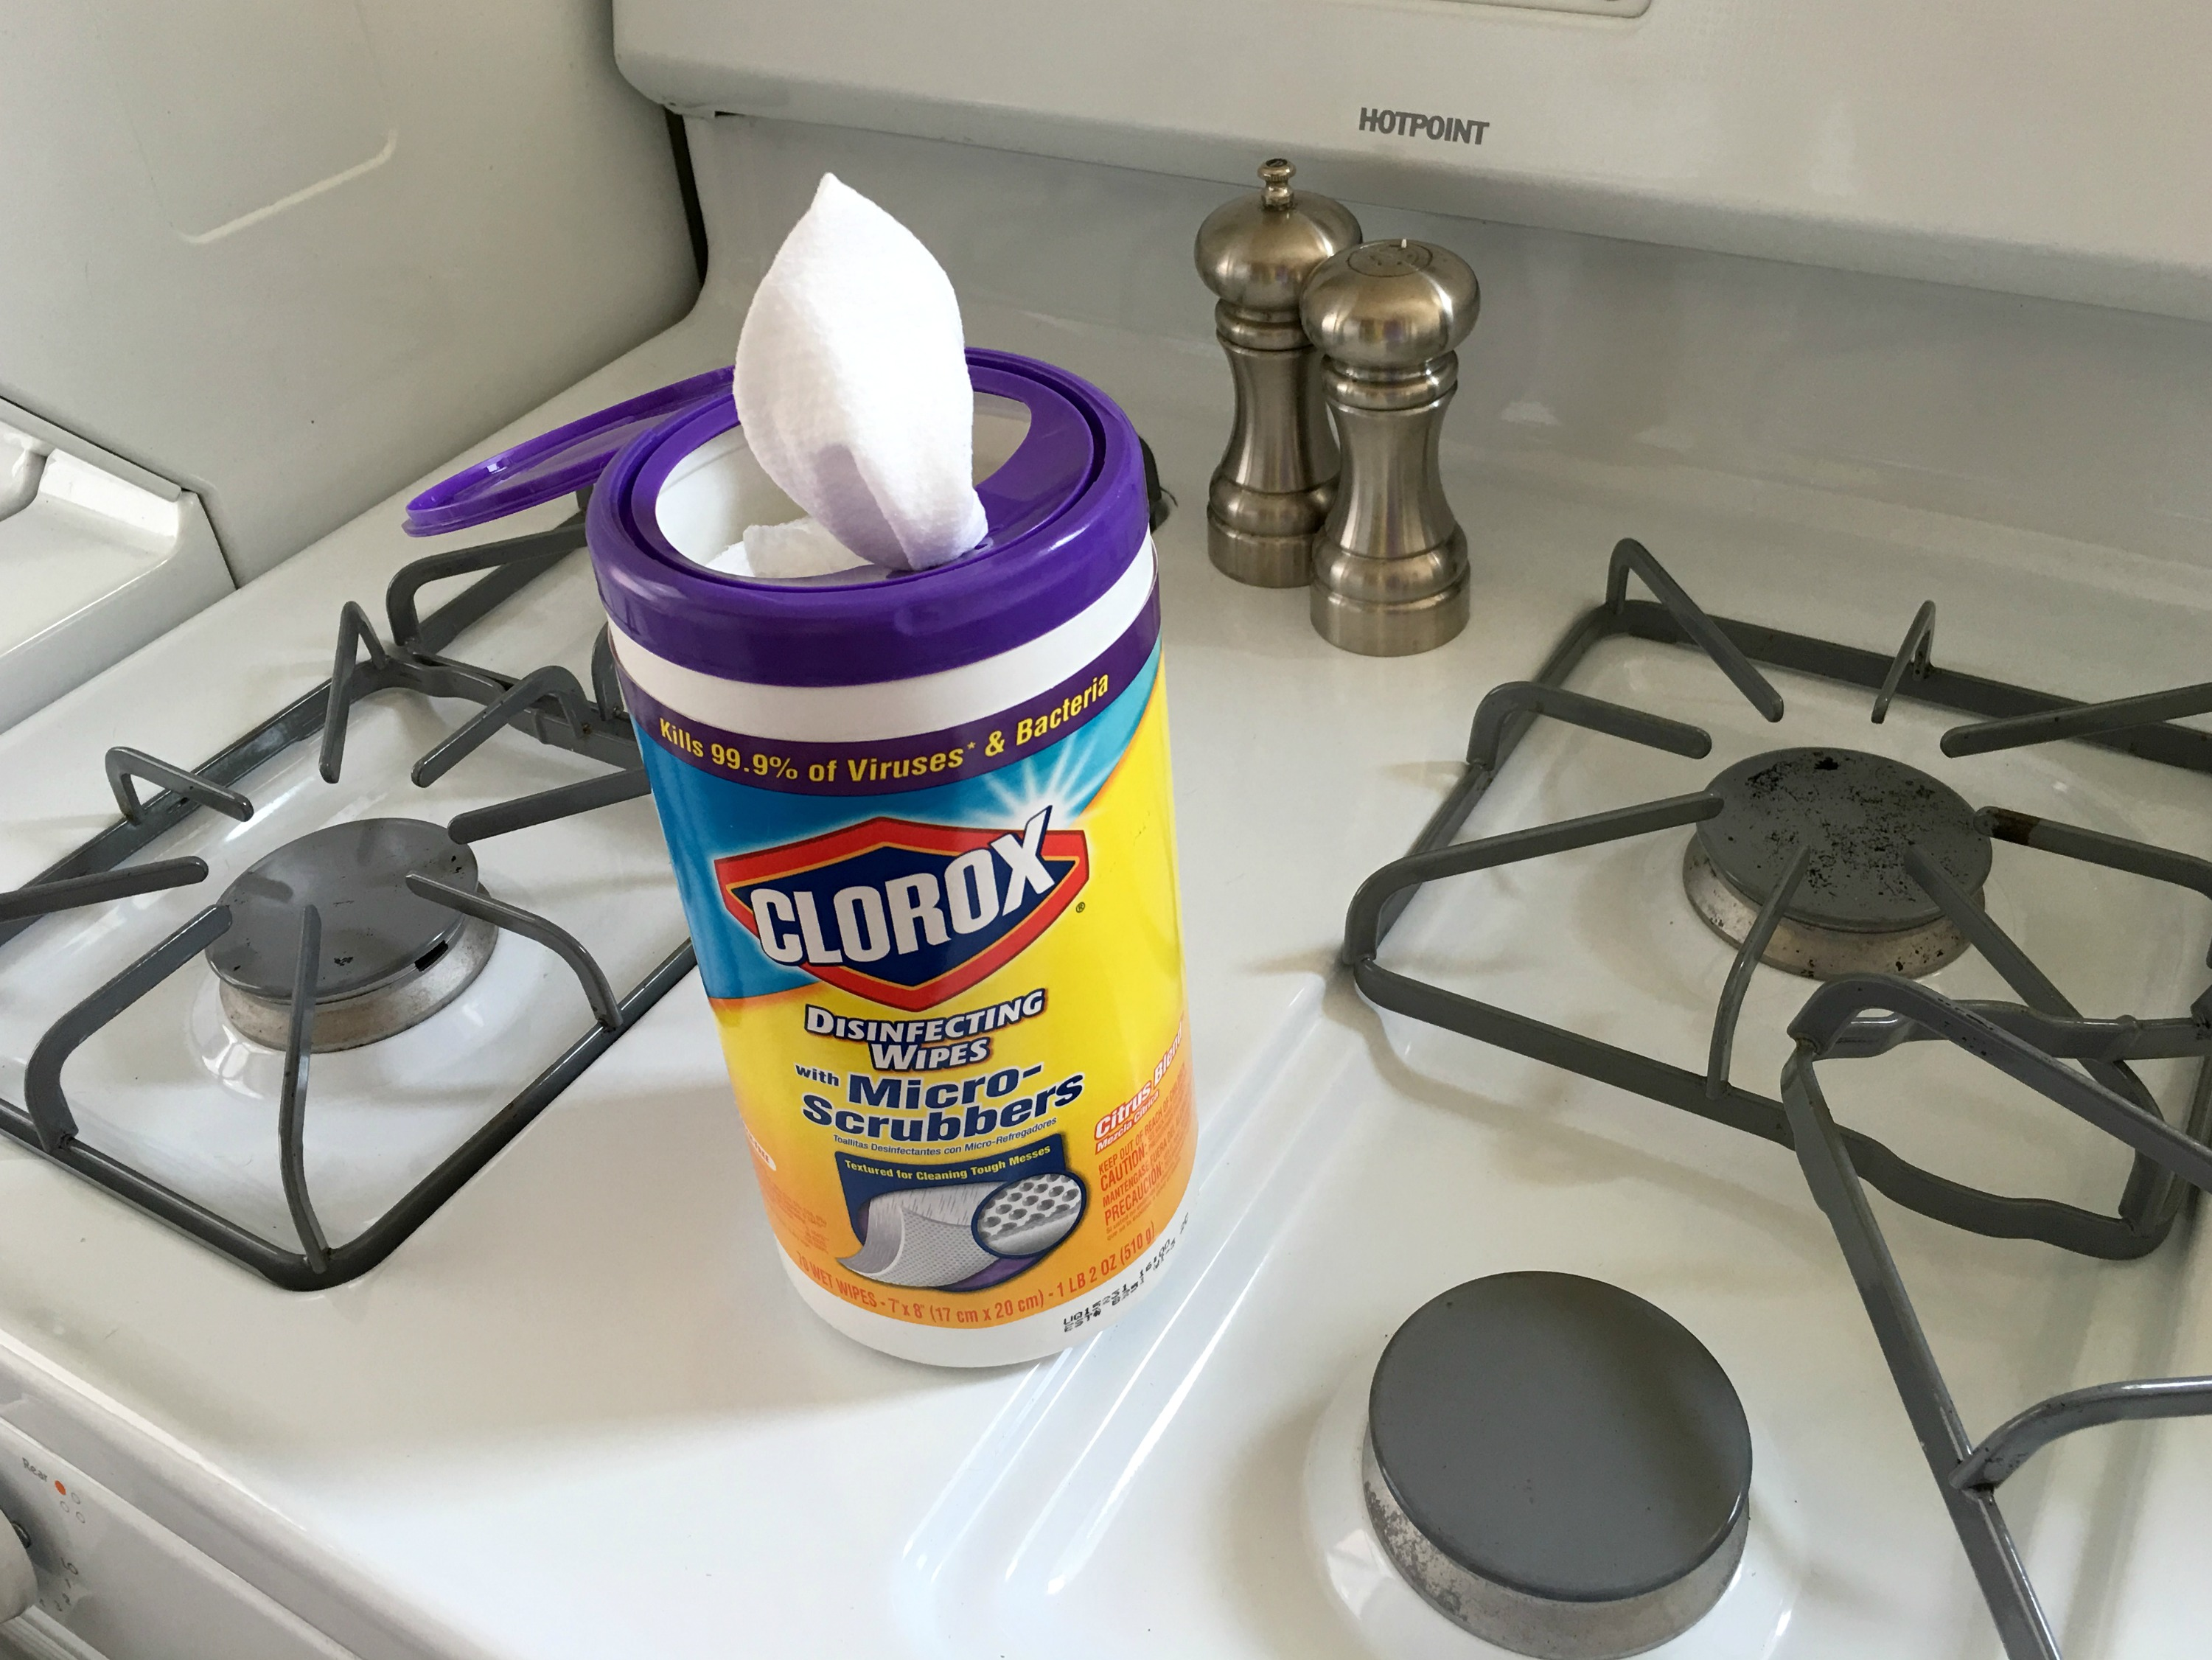 cleaning the kitchen - clorox disinfecting wipes with micro-scrubbers